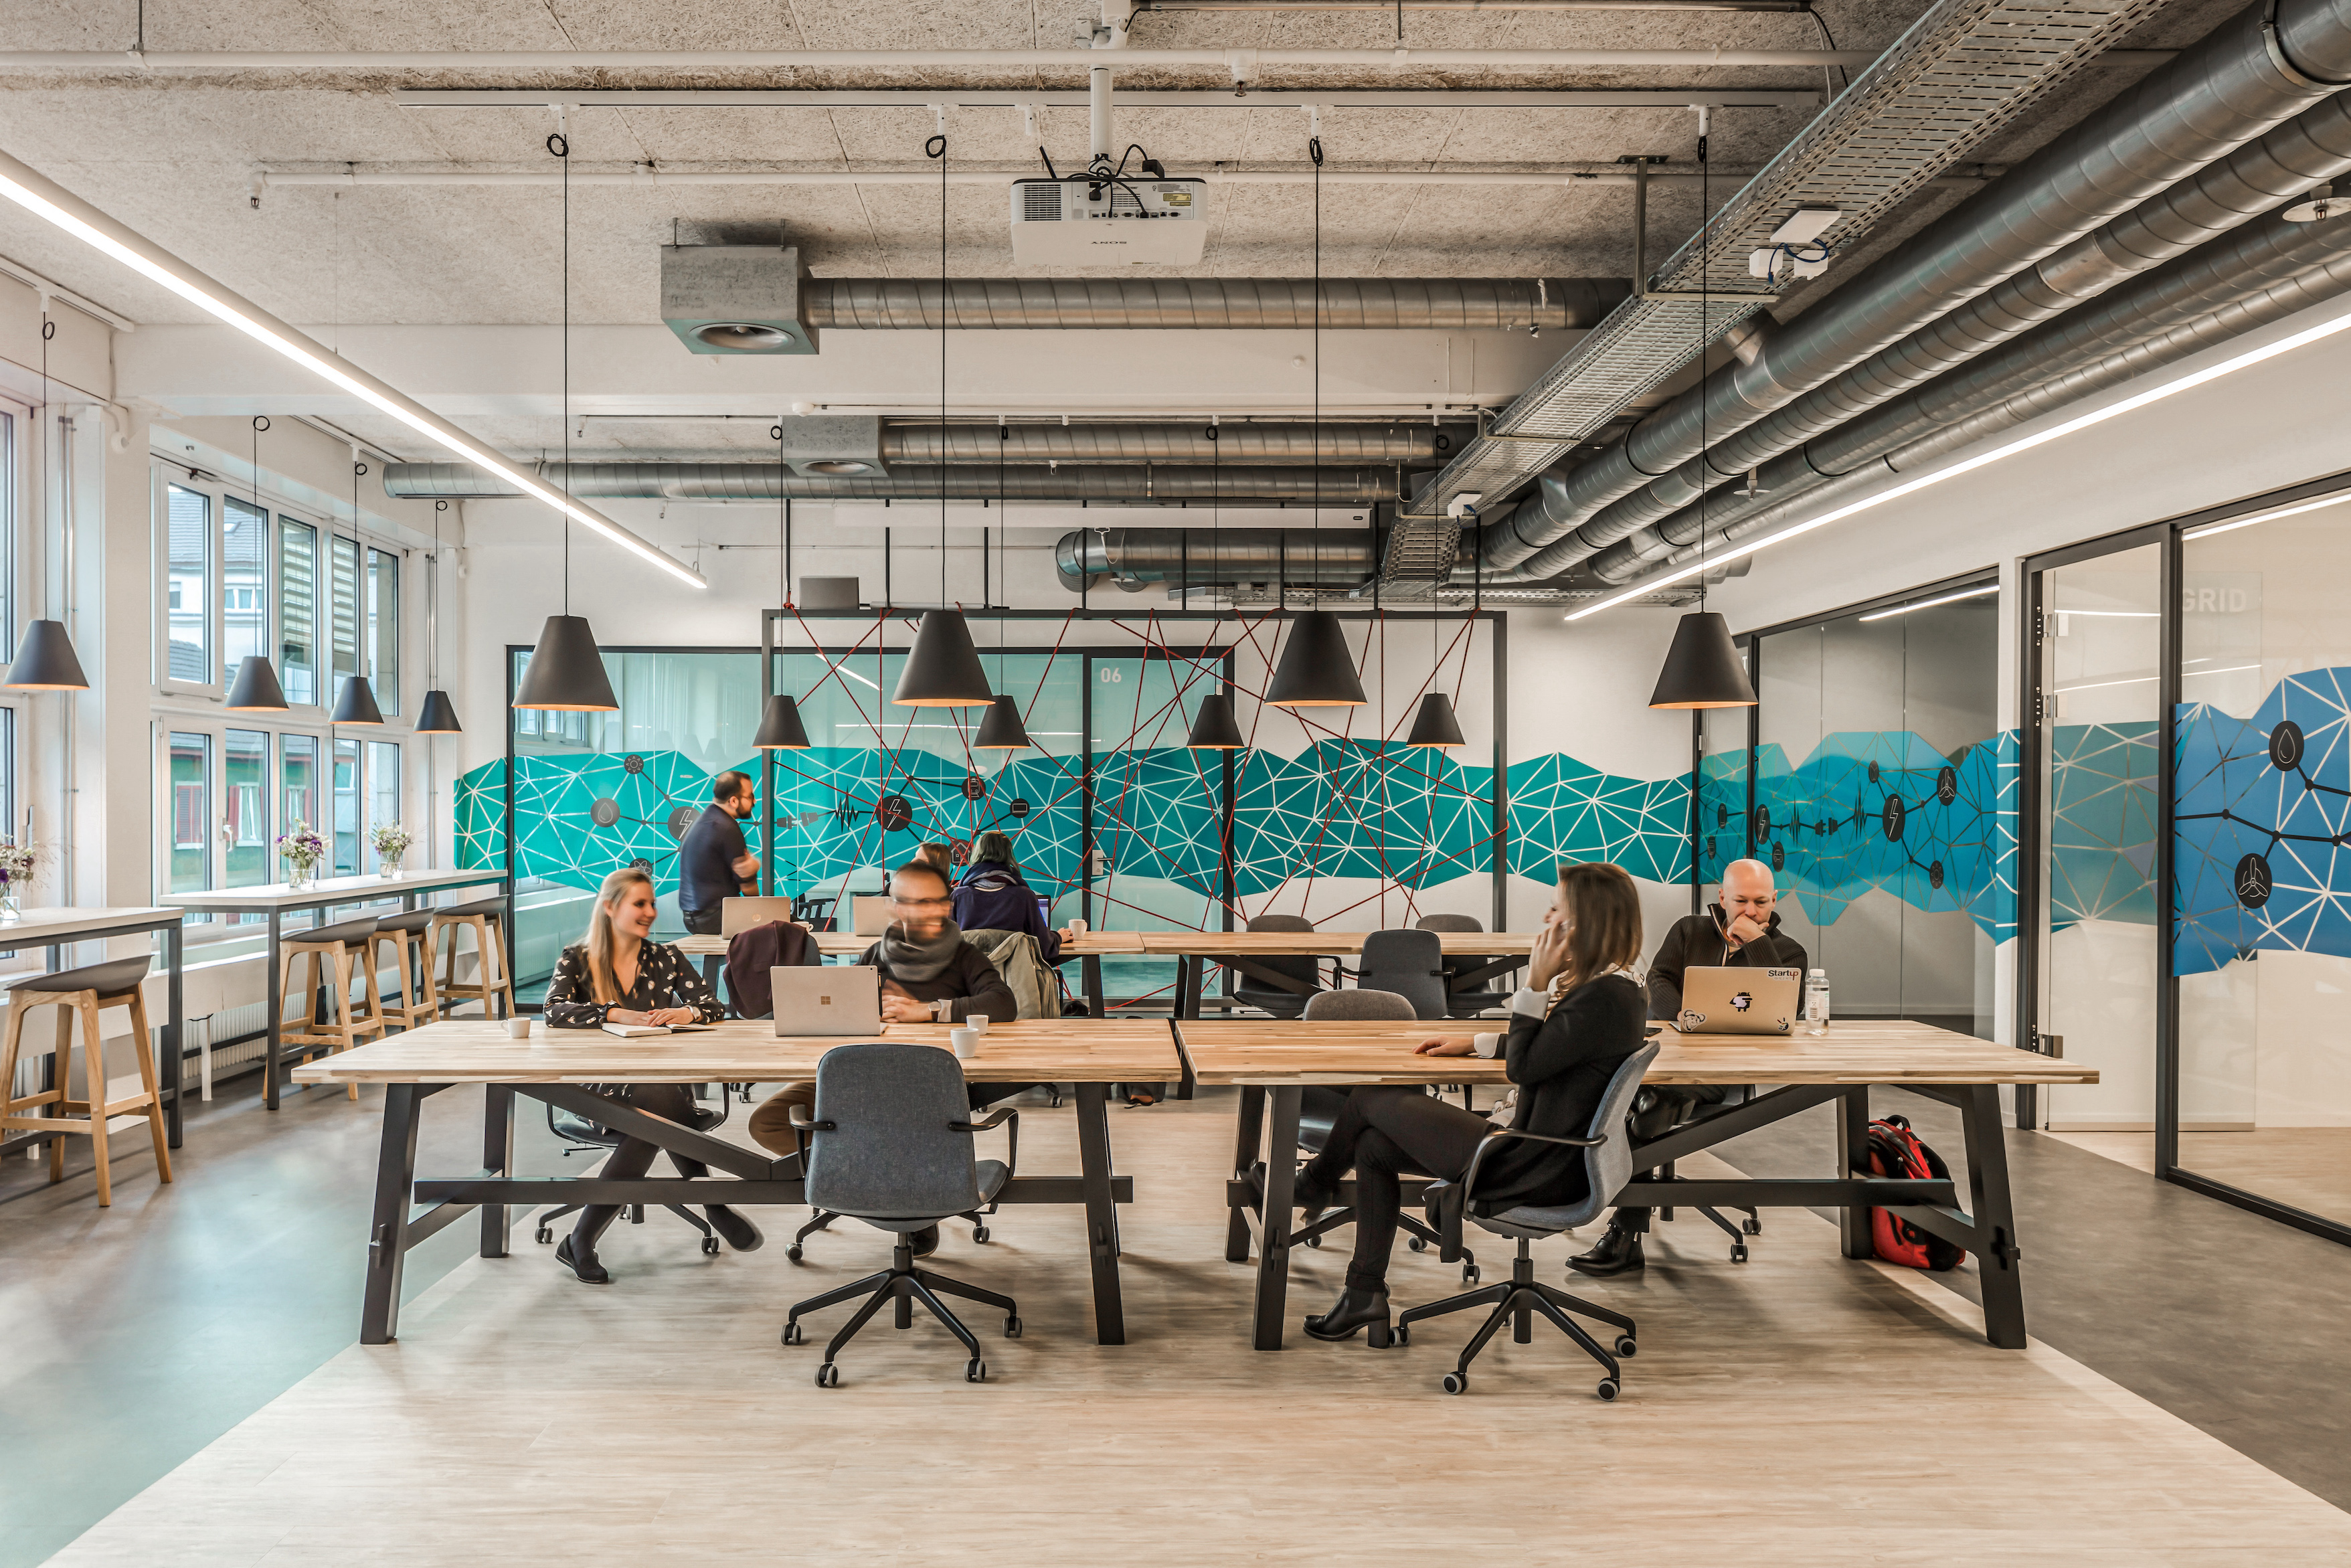 11 Most Frequent Questions about Coworking Spaces